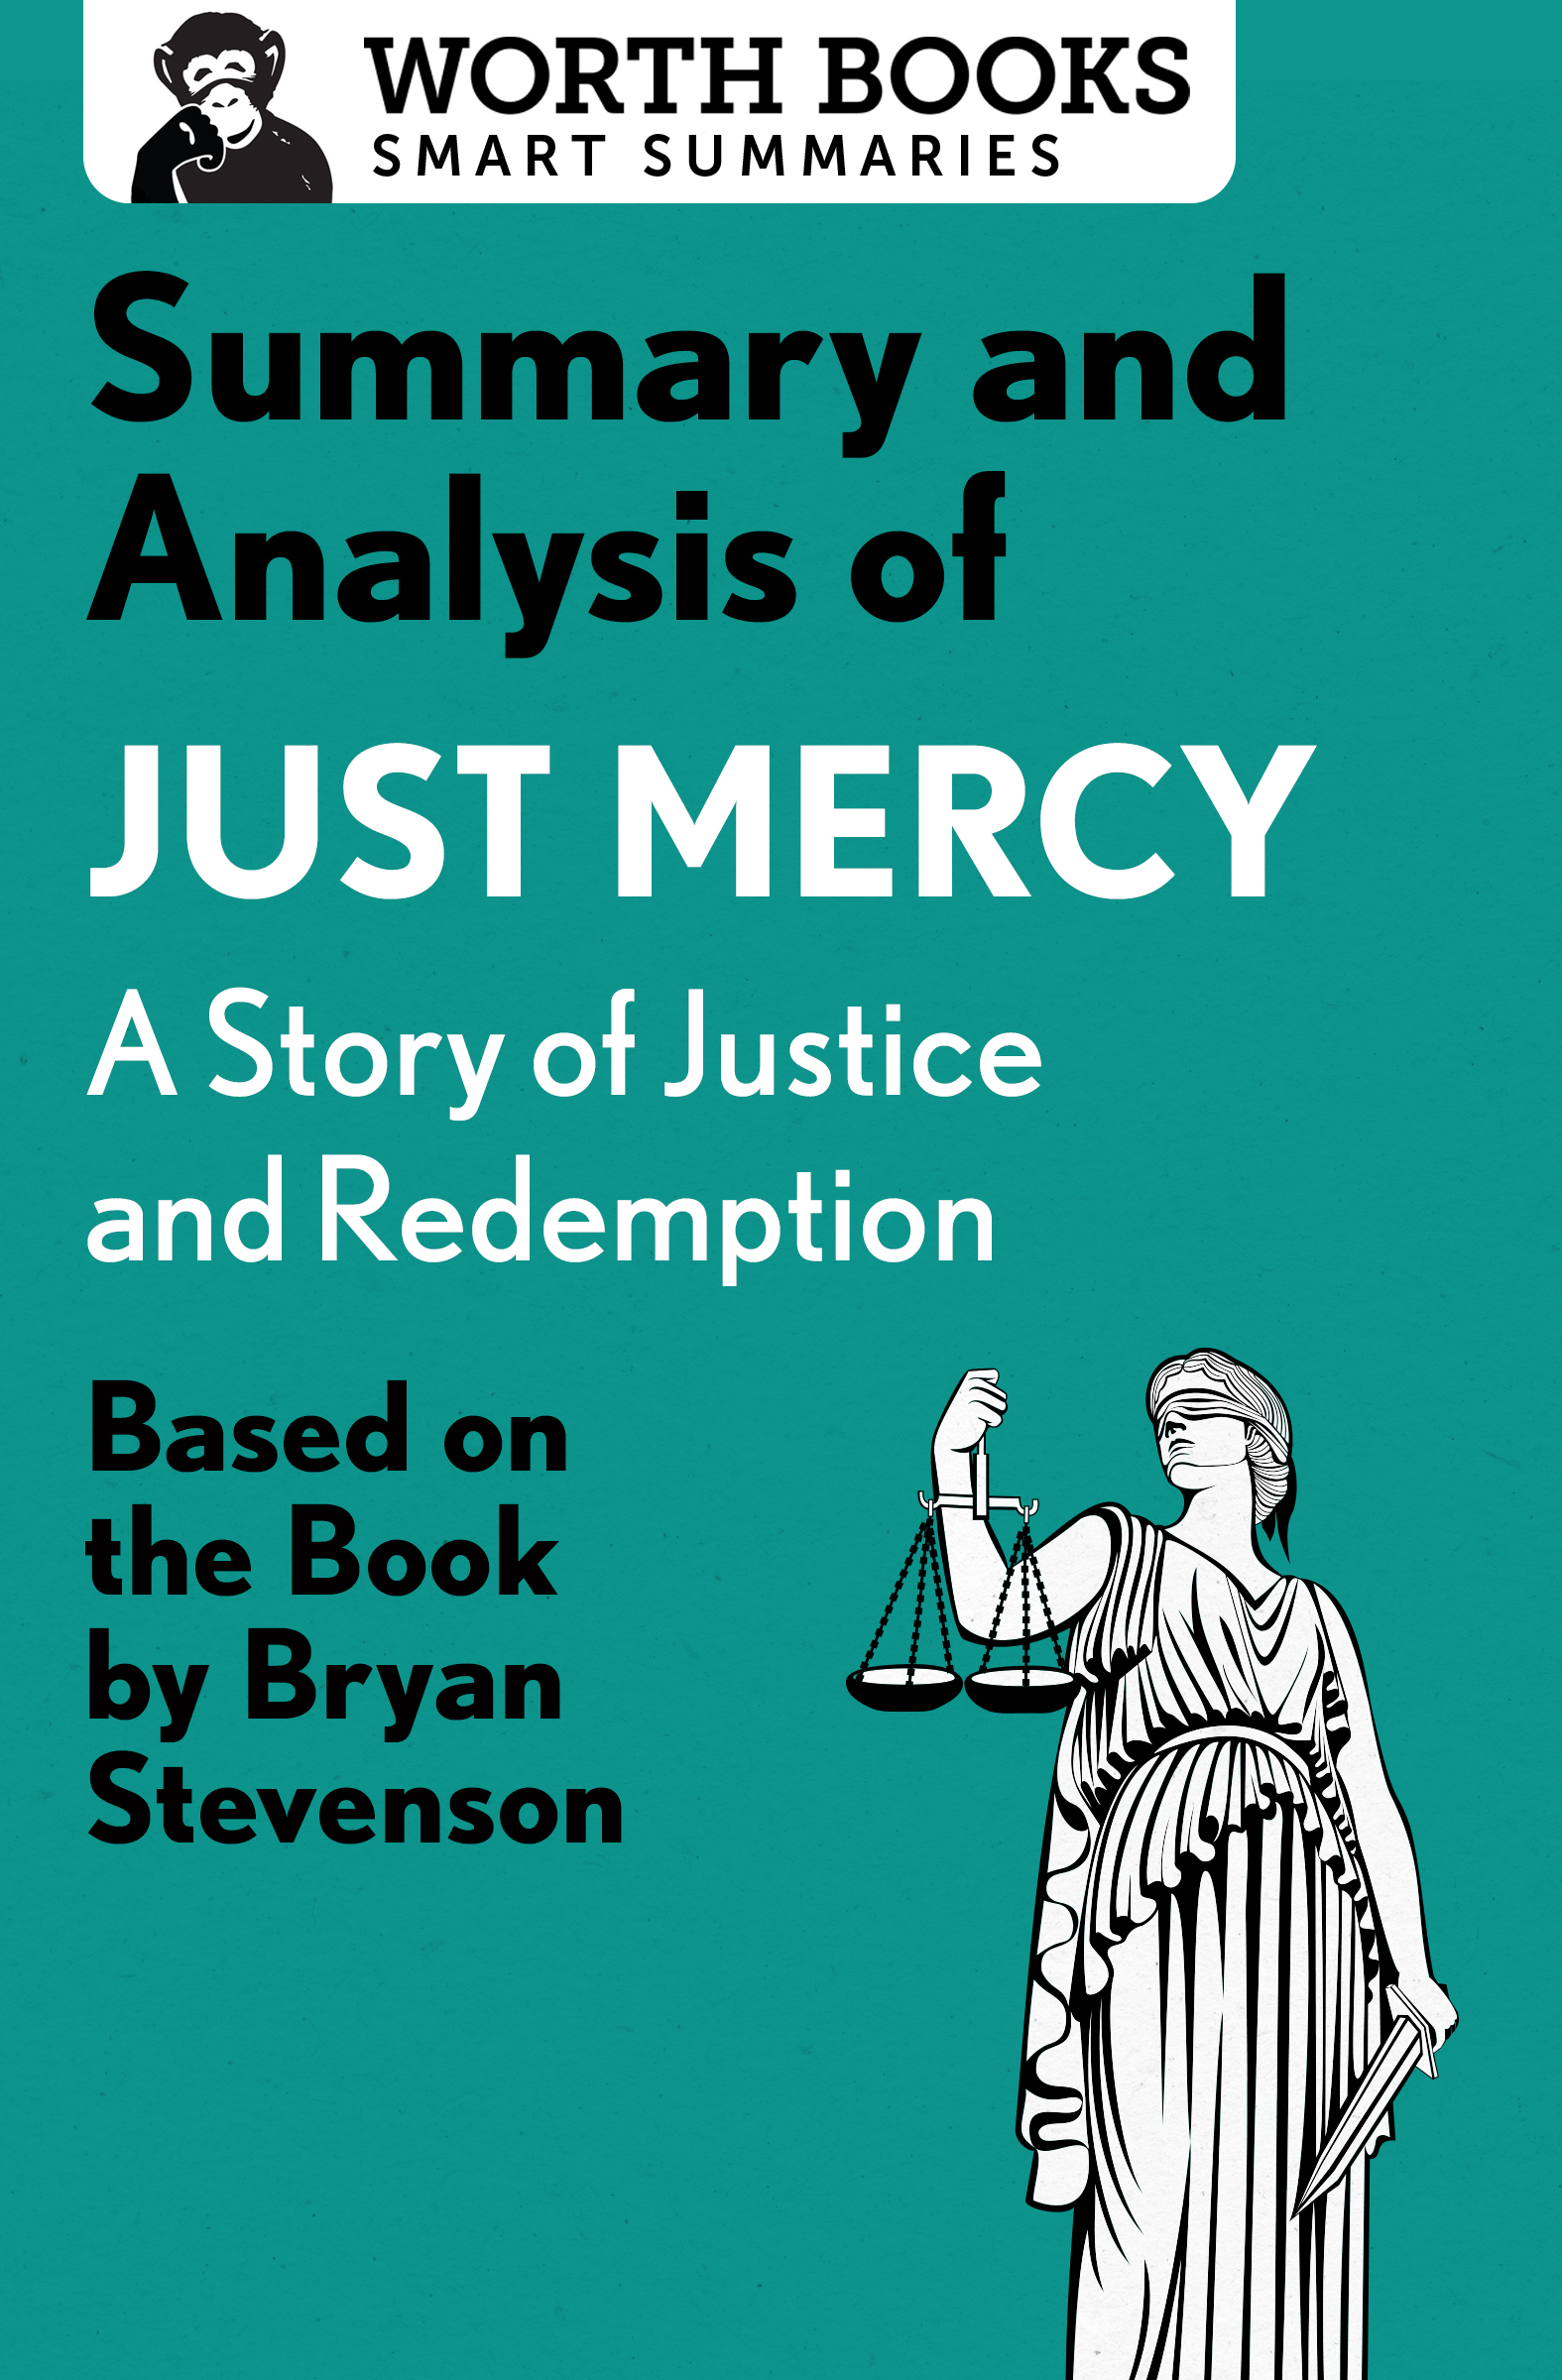 Summary and Analysis of Just Mercy: A Story of Justice and Redemption: Based on the Book by Bryan Stevenson